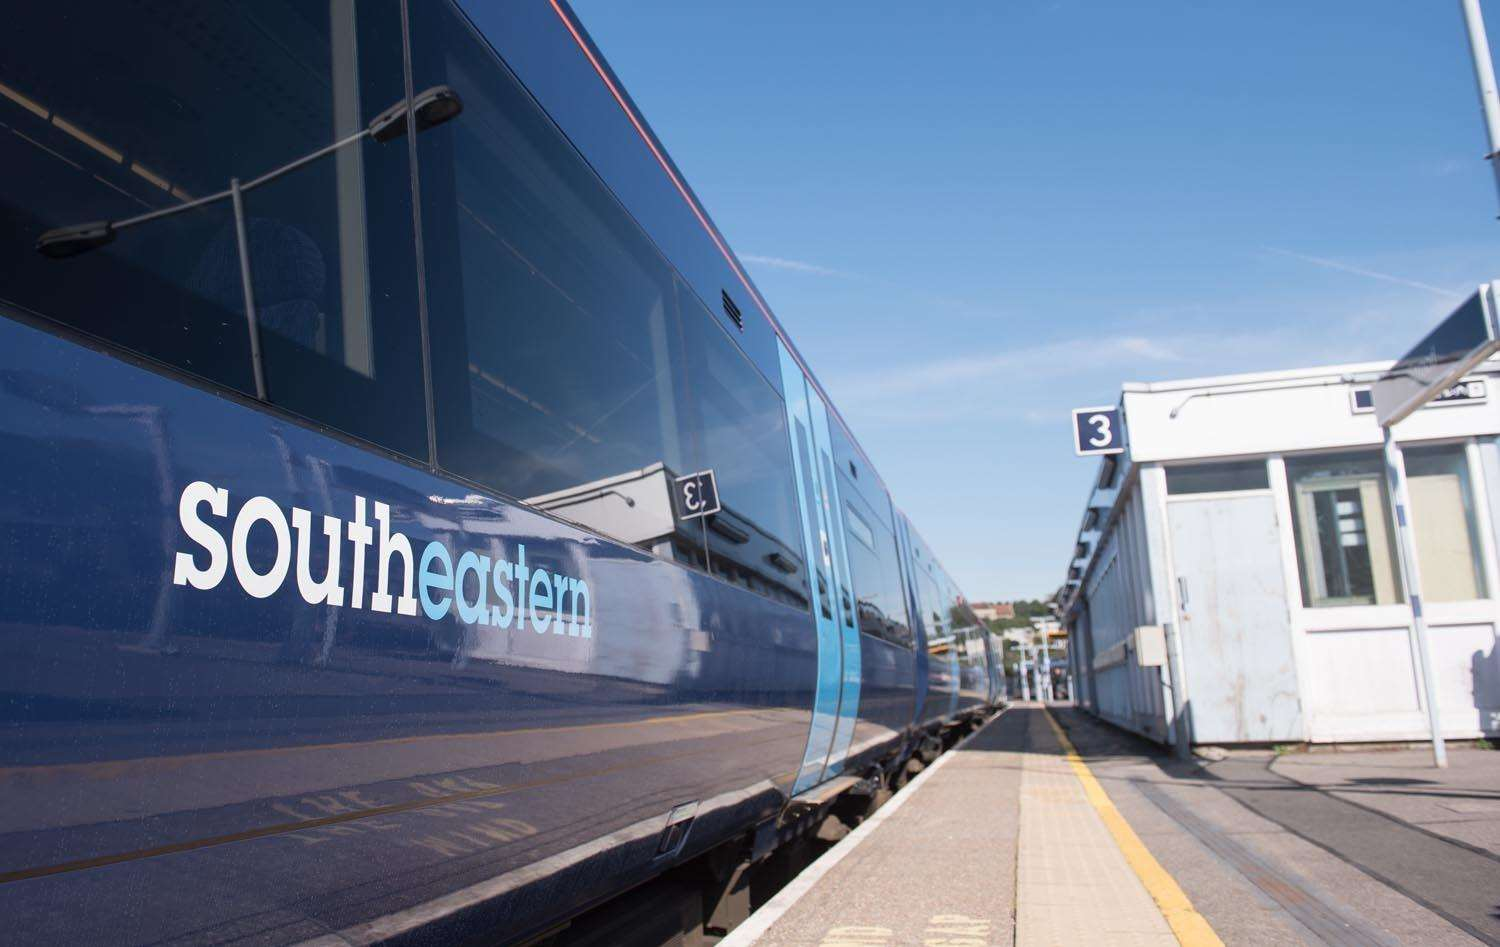 Southeastern has warned passengers about disruption (Stock image)